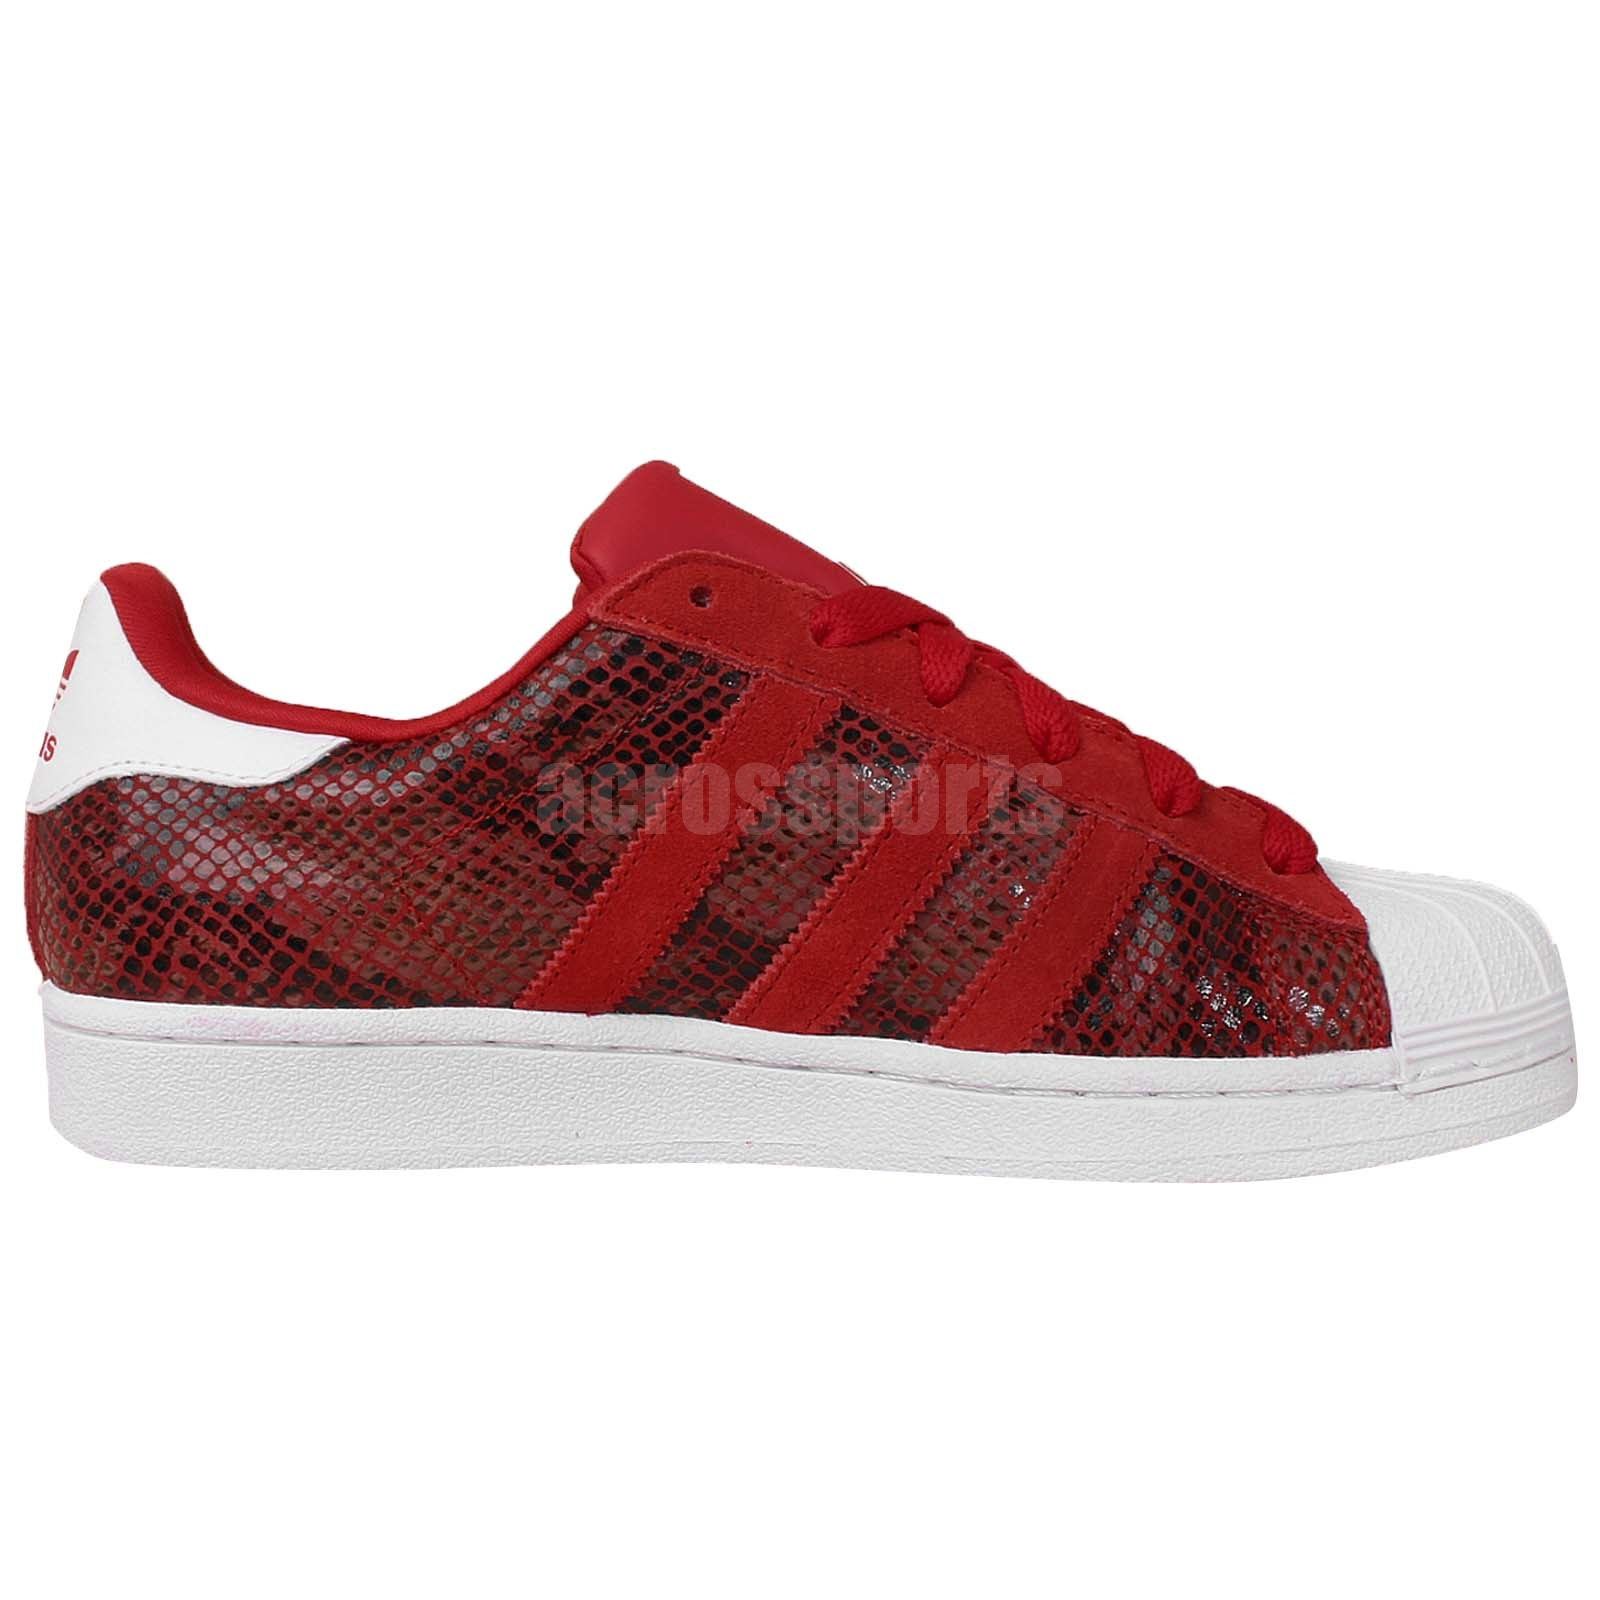 adidas superstar croco rouge